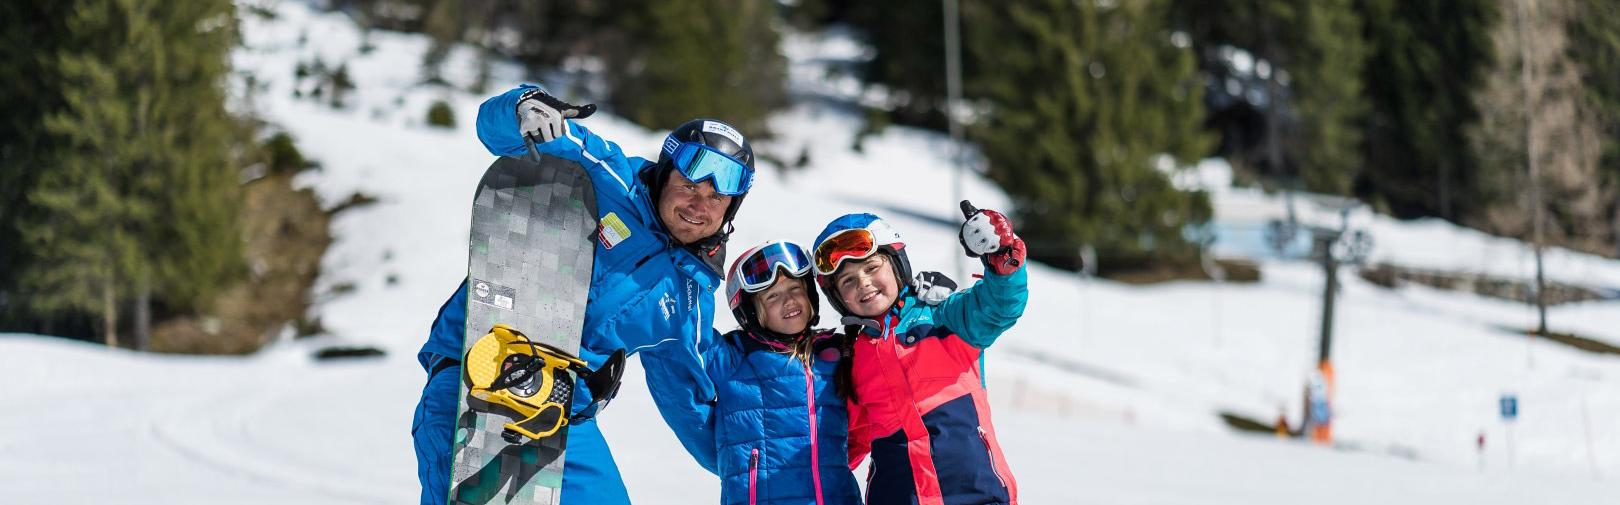 Learn snowboarding in Flachau - snowboard group courses for beginners to professionals